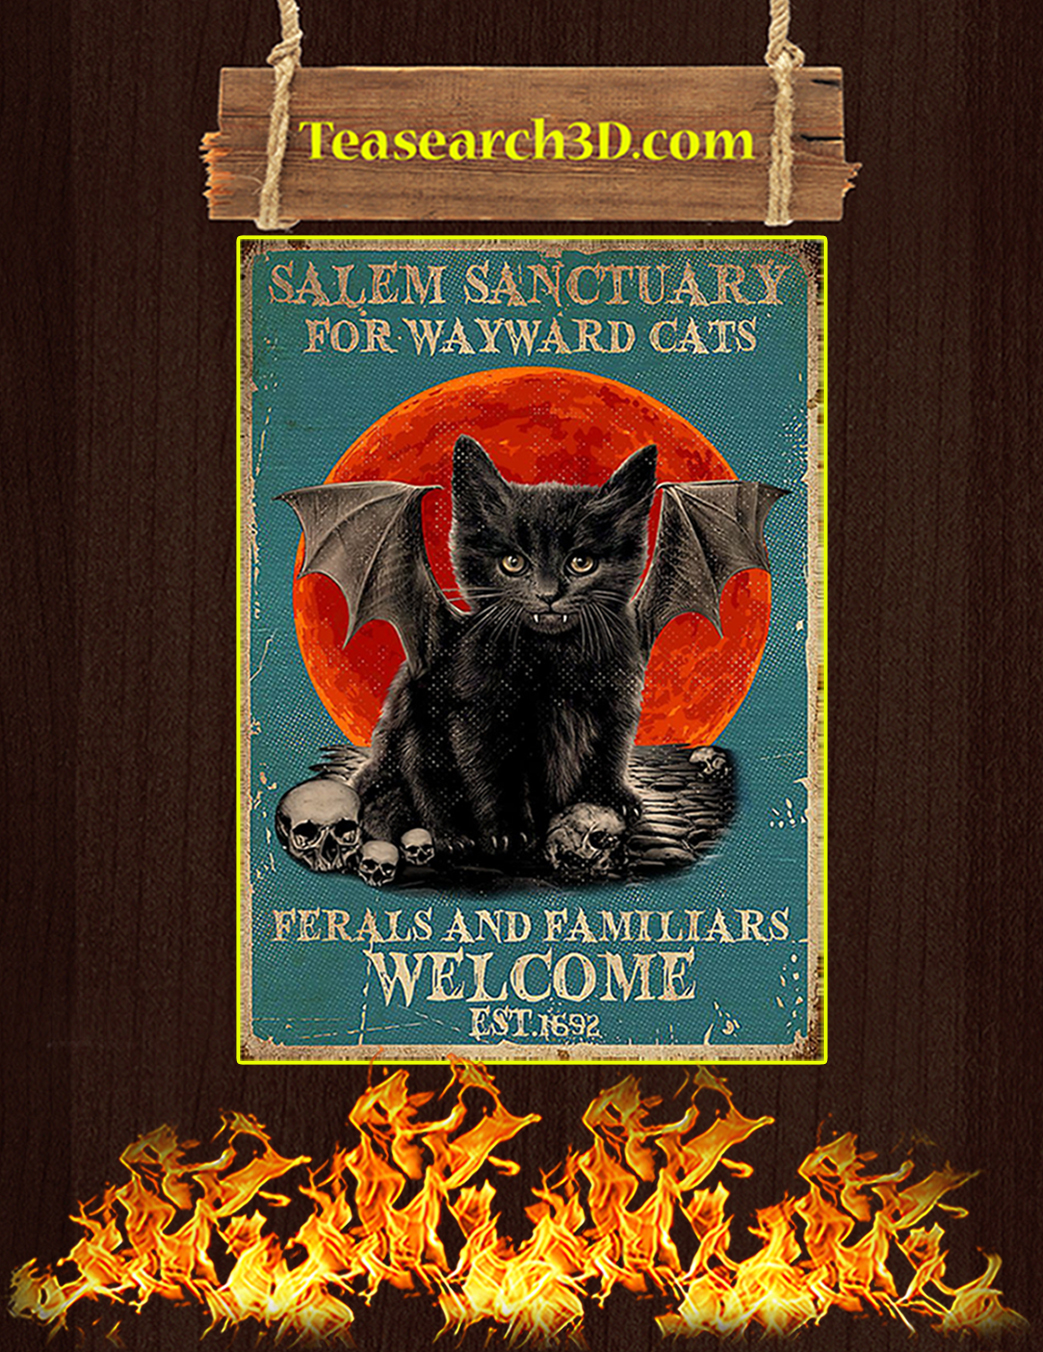 Salem sanctuary for wayward cats ferals and familiars welcome est 1962 poster A1